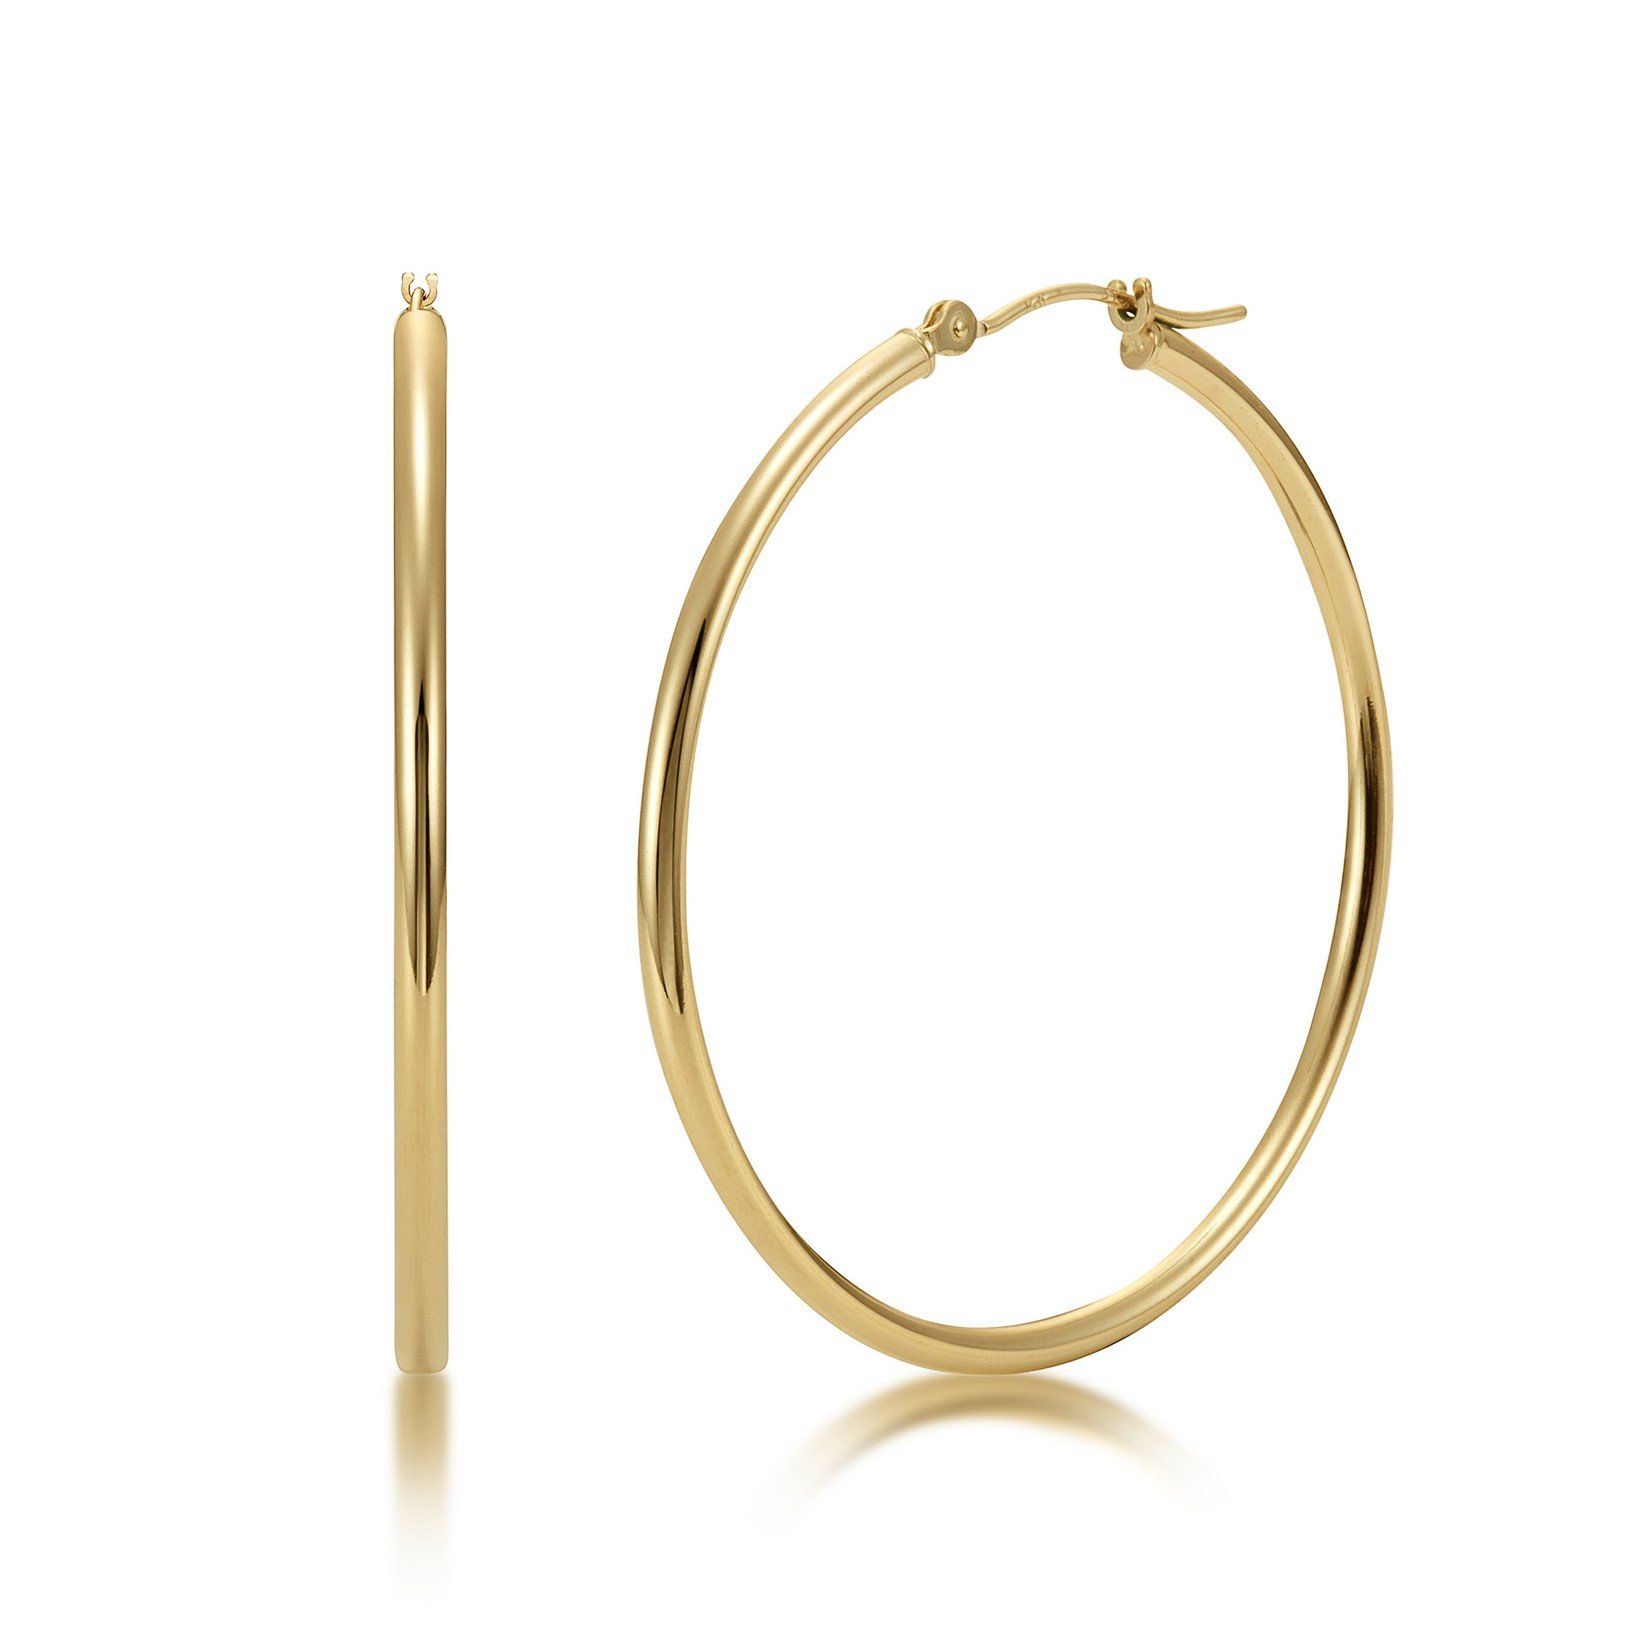 High Polished 14k Yellow Gold 2mm x 40mm Click Top Tube Hoop Earrings - By Kezef Creations